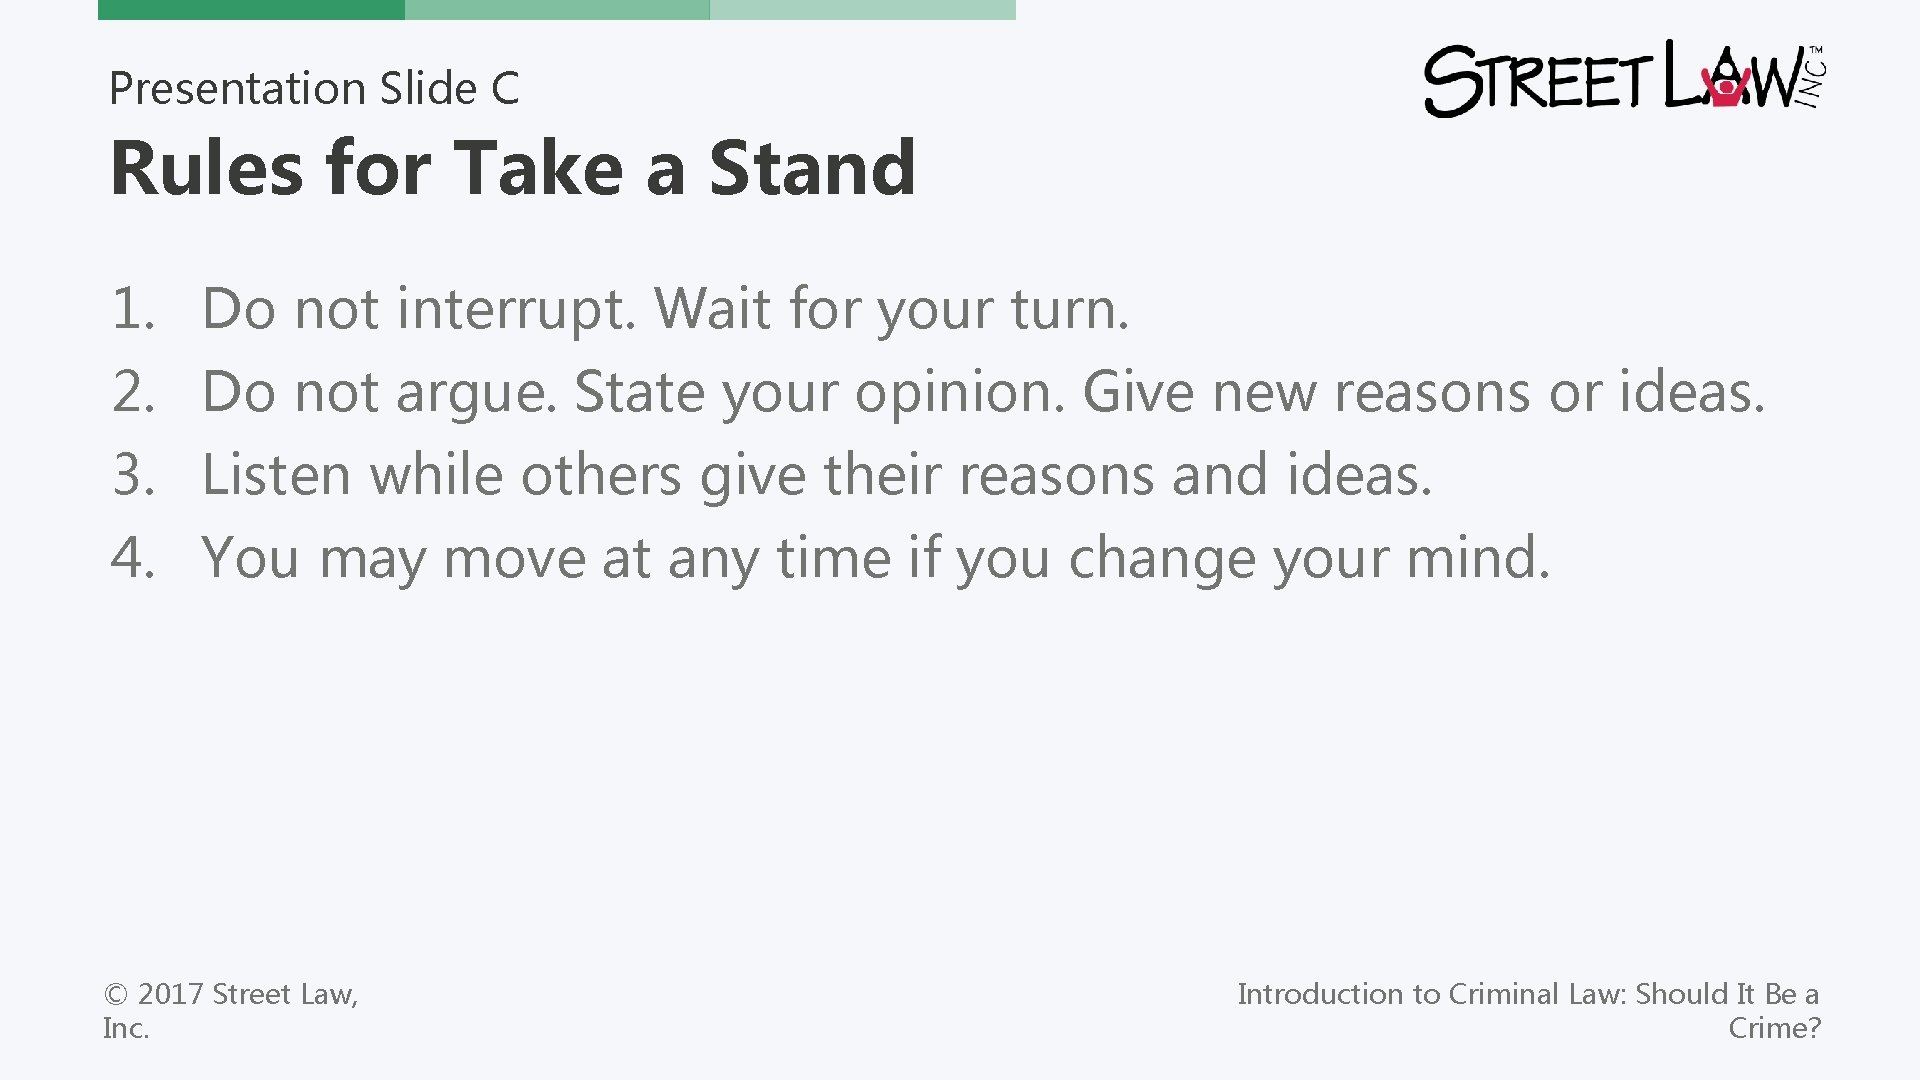 Presentation Slide C Rules for Take a Stand 1. Do not interrupt. Wait for